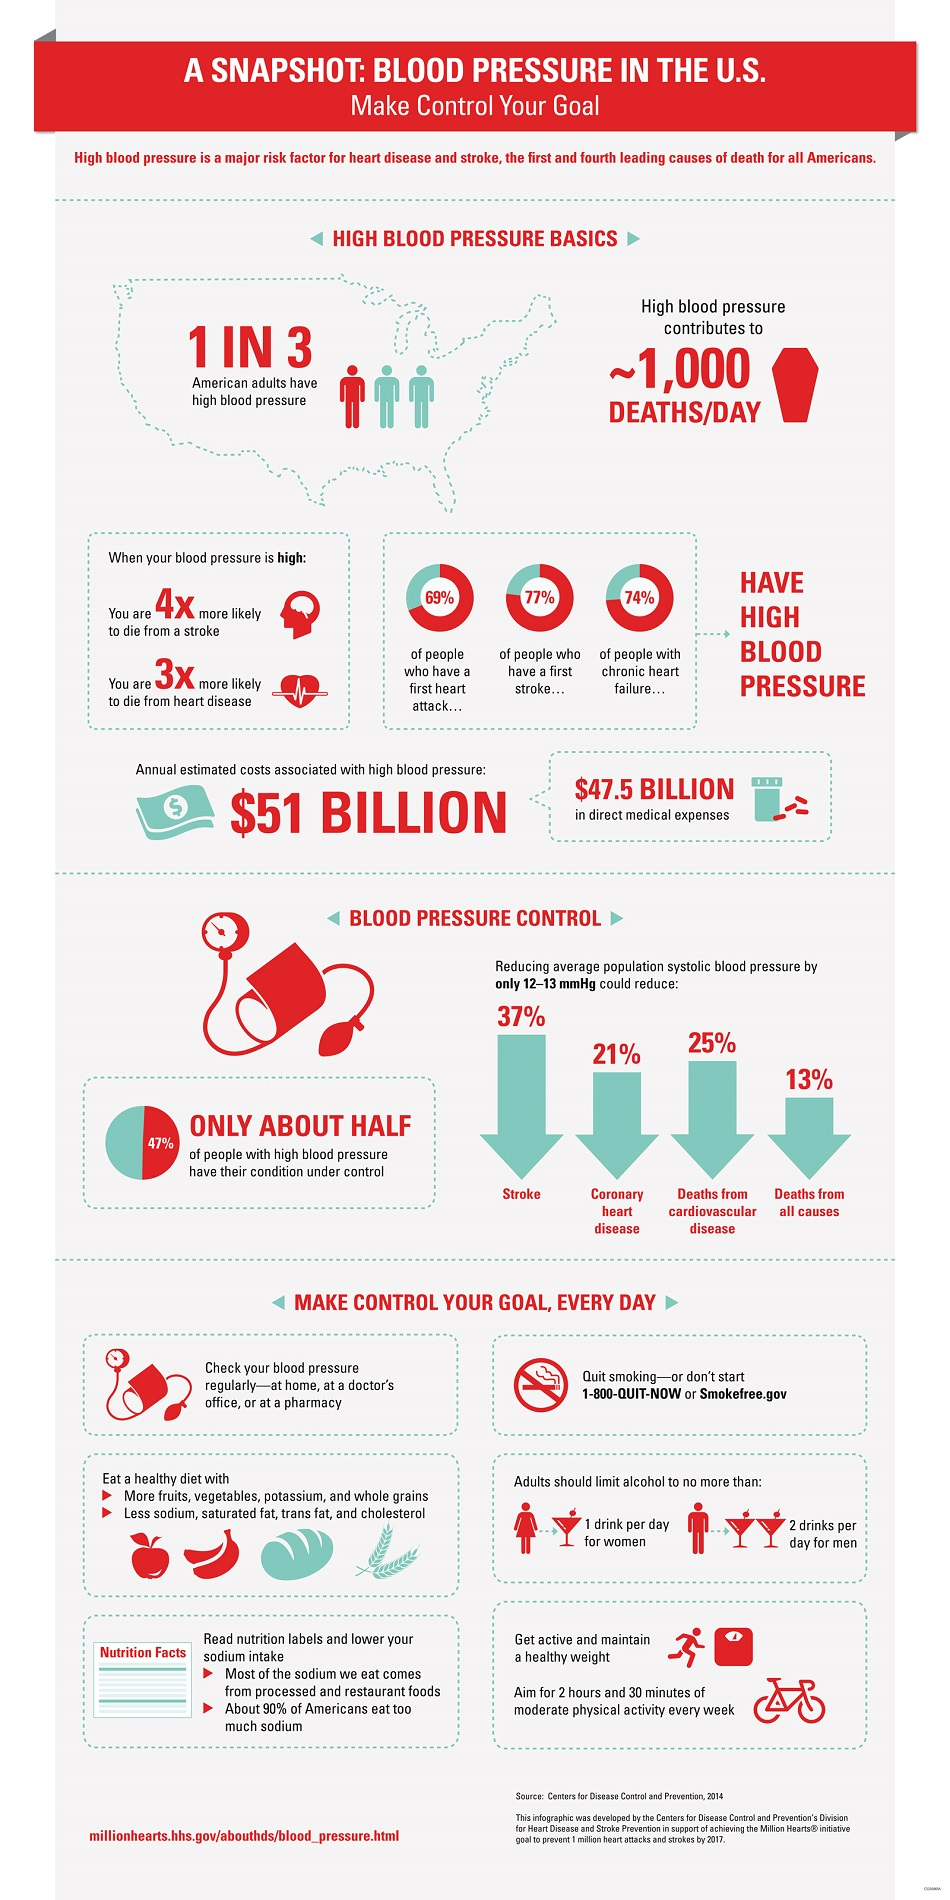 A Snapshot: Blood Pressure in the U.S. Make Control Your Goal. High blood pressure is a major risk factor for heart disease and stroke, the first and fourth leading causes of death for all Americans. High Blood Pressure Basics. 1 in 3 adults have high blood pressure. High blood pressure contributes to ~1,000 deaths/day. When your blood pressure is high, you are 4 times more likely to die from a stroke, and you are 3 times more likely to die from heart disease. 69% of people who have a first heart attack, 77% of people who have a first stroke, and 74% of people with chronic heart failure have high blood pressure. Annual estimated costs associated with high blood pressure: $51 billion, including $47.5 billion in direct medical expenses. Blood Pressure Control. Only about half of people with high blood pressure have their condition under control. Reducing average population systolic blood pressure by only 12�13 mmHg could reduce stroke by 37%, coronary heart disease by 21%, deaths from cardiovascular disease by 25%, and deaths from all causes by 13%. Make Control Your Goal, Every Day. Check your blood pressure regularly�at home, at a doctor�s office, or at a pharmacy. Eat a healthy diet with more fruits, vegetables, potassium, and whole grains and less sodium, saturated fat, trans fat, and cholesterol . Read nutrition labels and lower your sodium intake. Most of the sodium we eat comes from processed and restaurant foods. About 90% of Americans eat too much sodium. Quit smoking�or don�t start. 1-800-QUIT-NOW or Smokefree.gov. Adults should limit alcohol to no more than 1 drink per day for women and 2 drinks per day for men. Get active and maintain a healthy weight. Aim for 2 hours and 30 minutes of moderate physical activity every week. This infographic was developed by the Centers for Disease Control and Prevention�s Division for Heart Disease and Stroke Prevention in support of achieving the Million Hearts® initiative goal to prevent 1 million heart attacks and strokes by 2017.